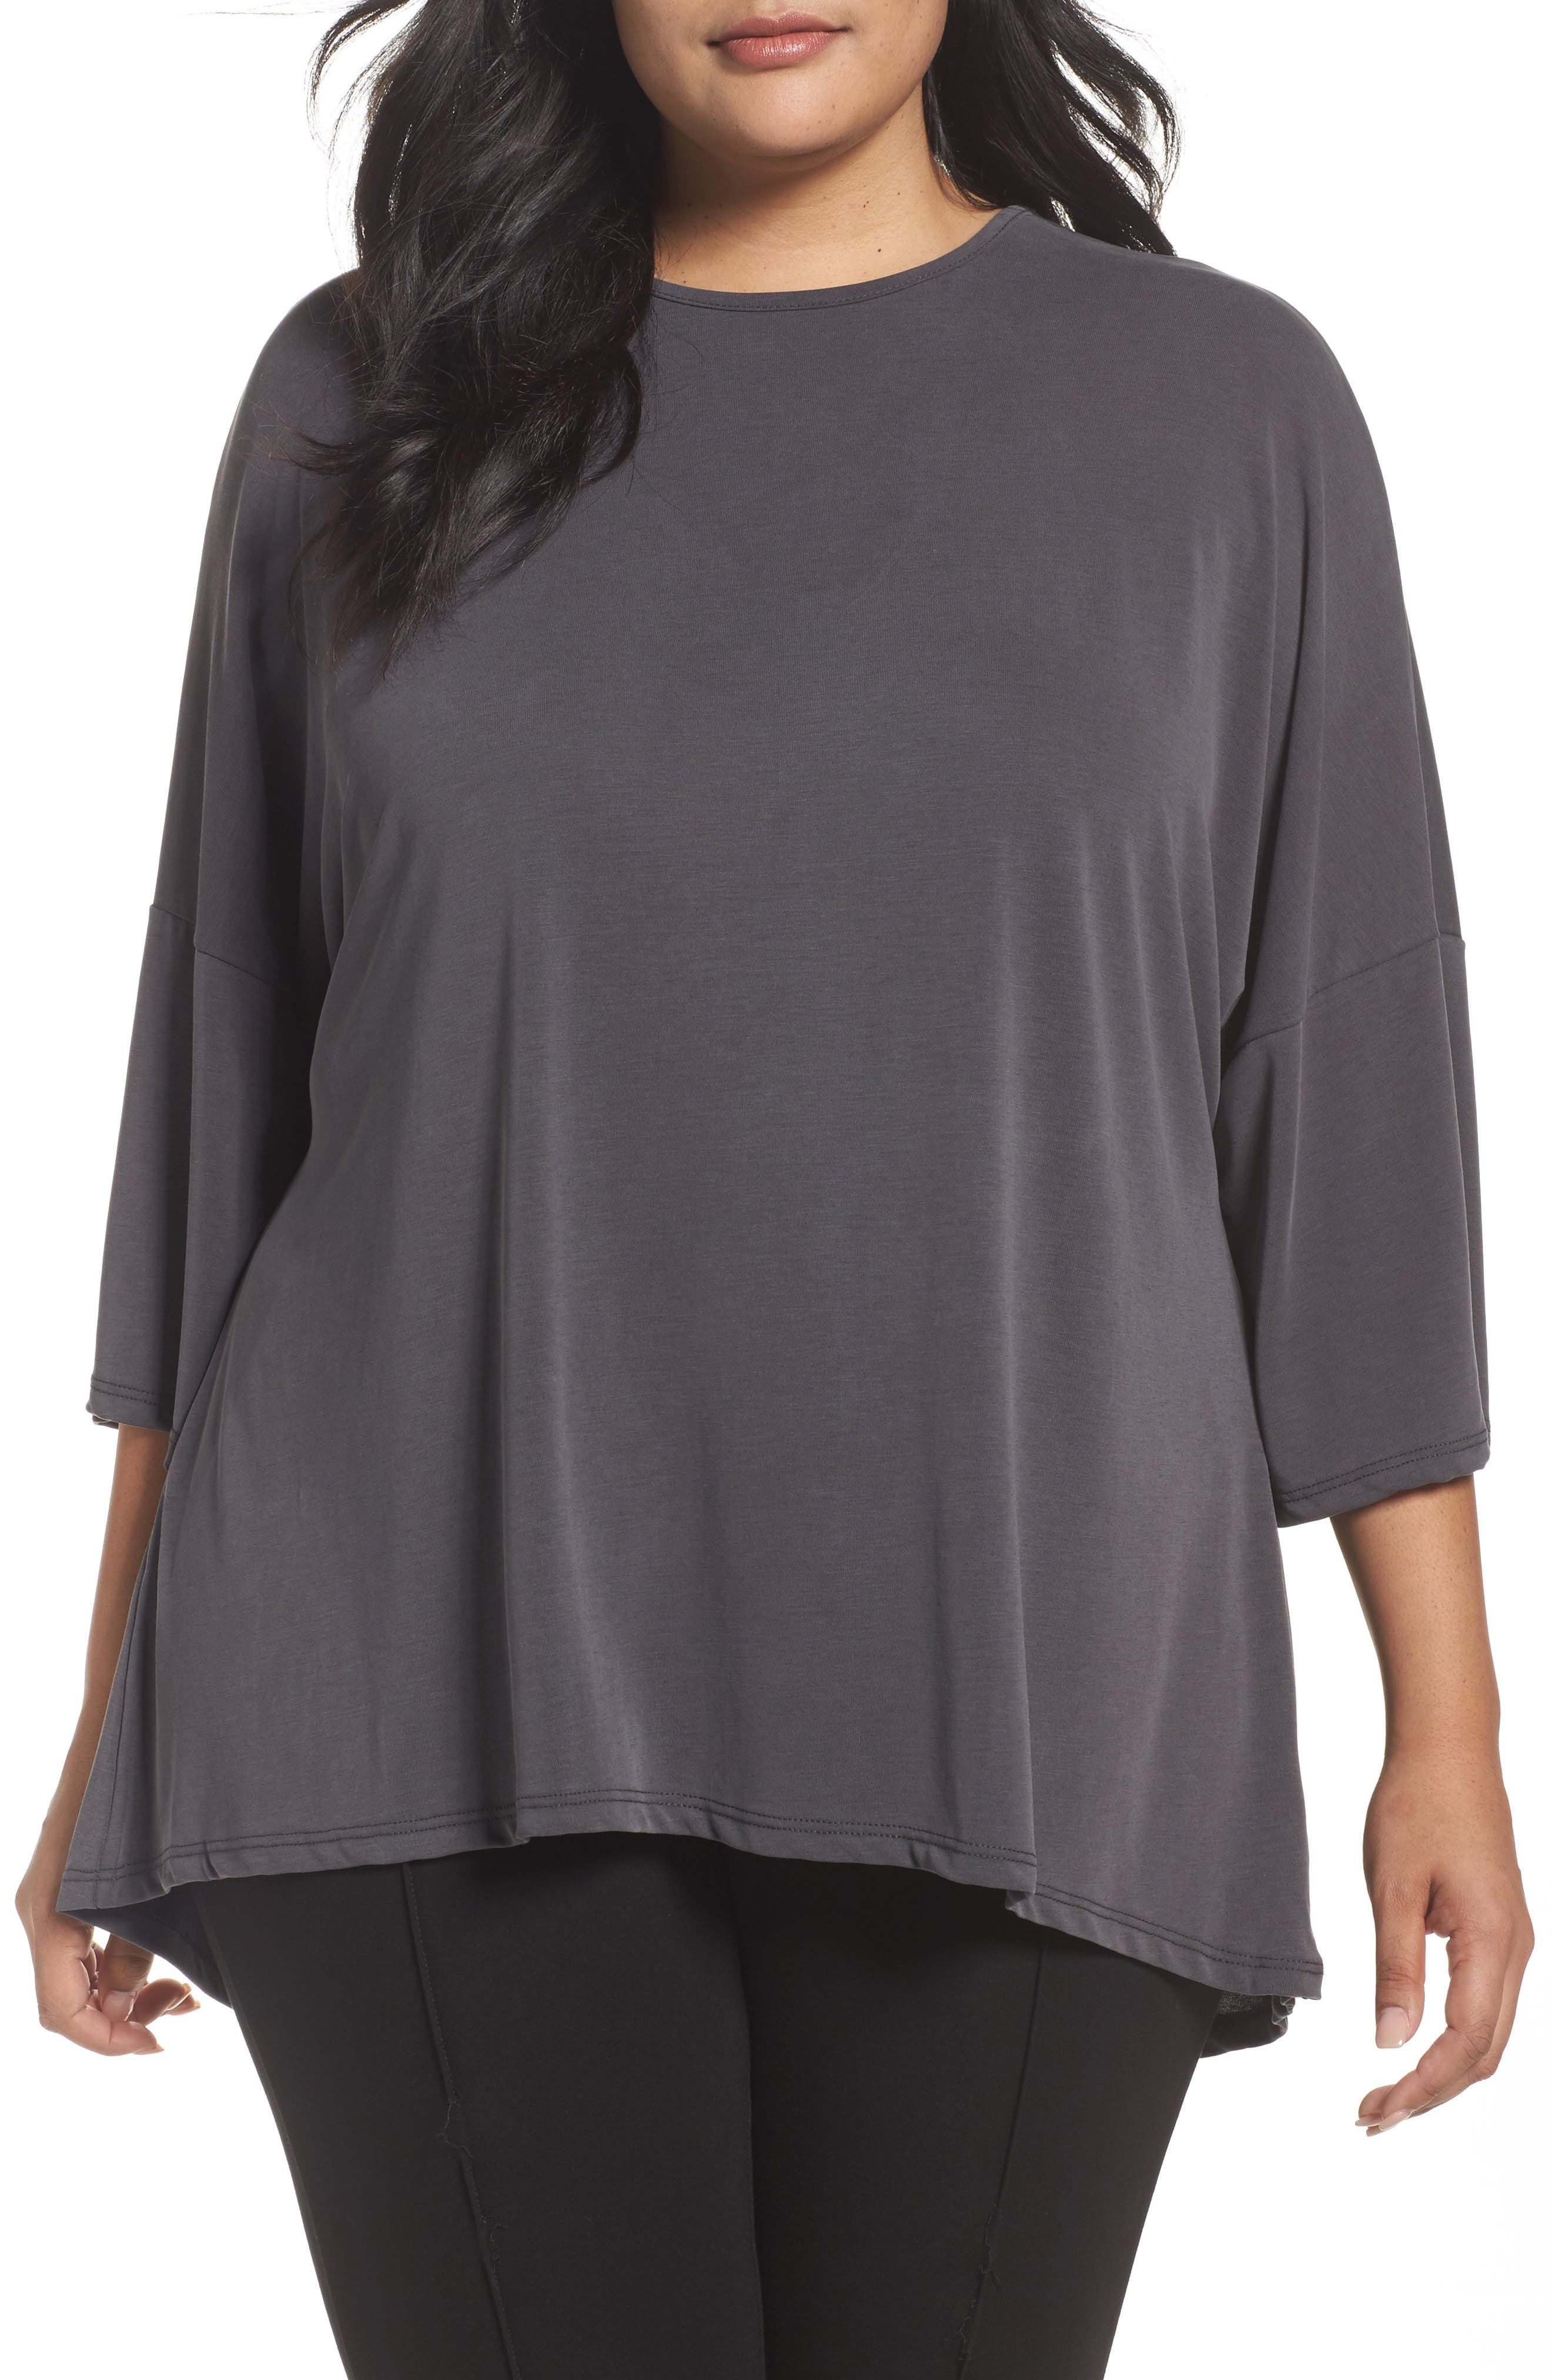 Alternate Image 1 Selected - Sejour Cross Back Knit Top (Plus Size)